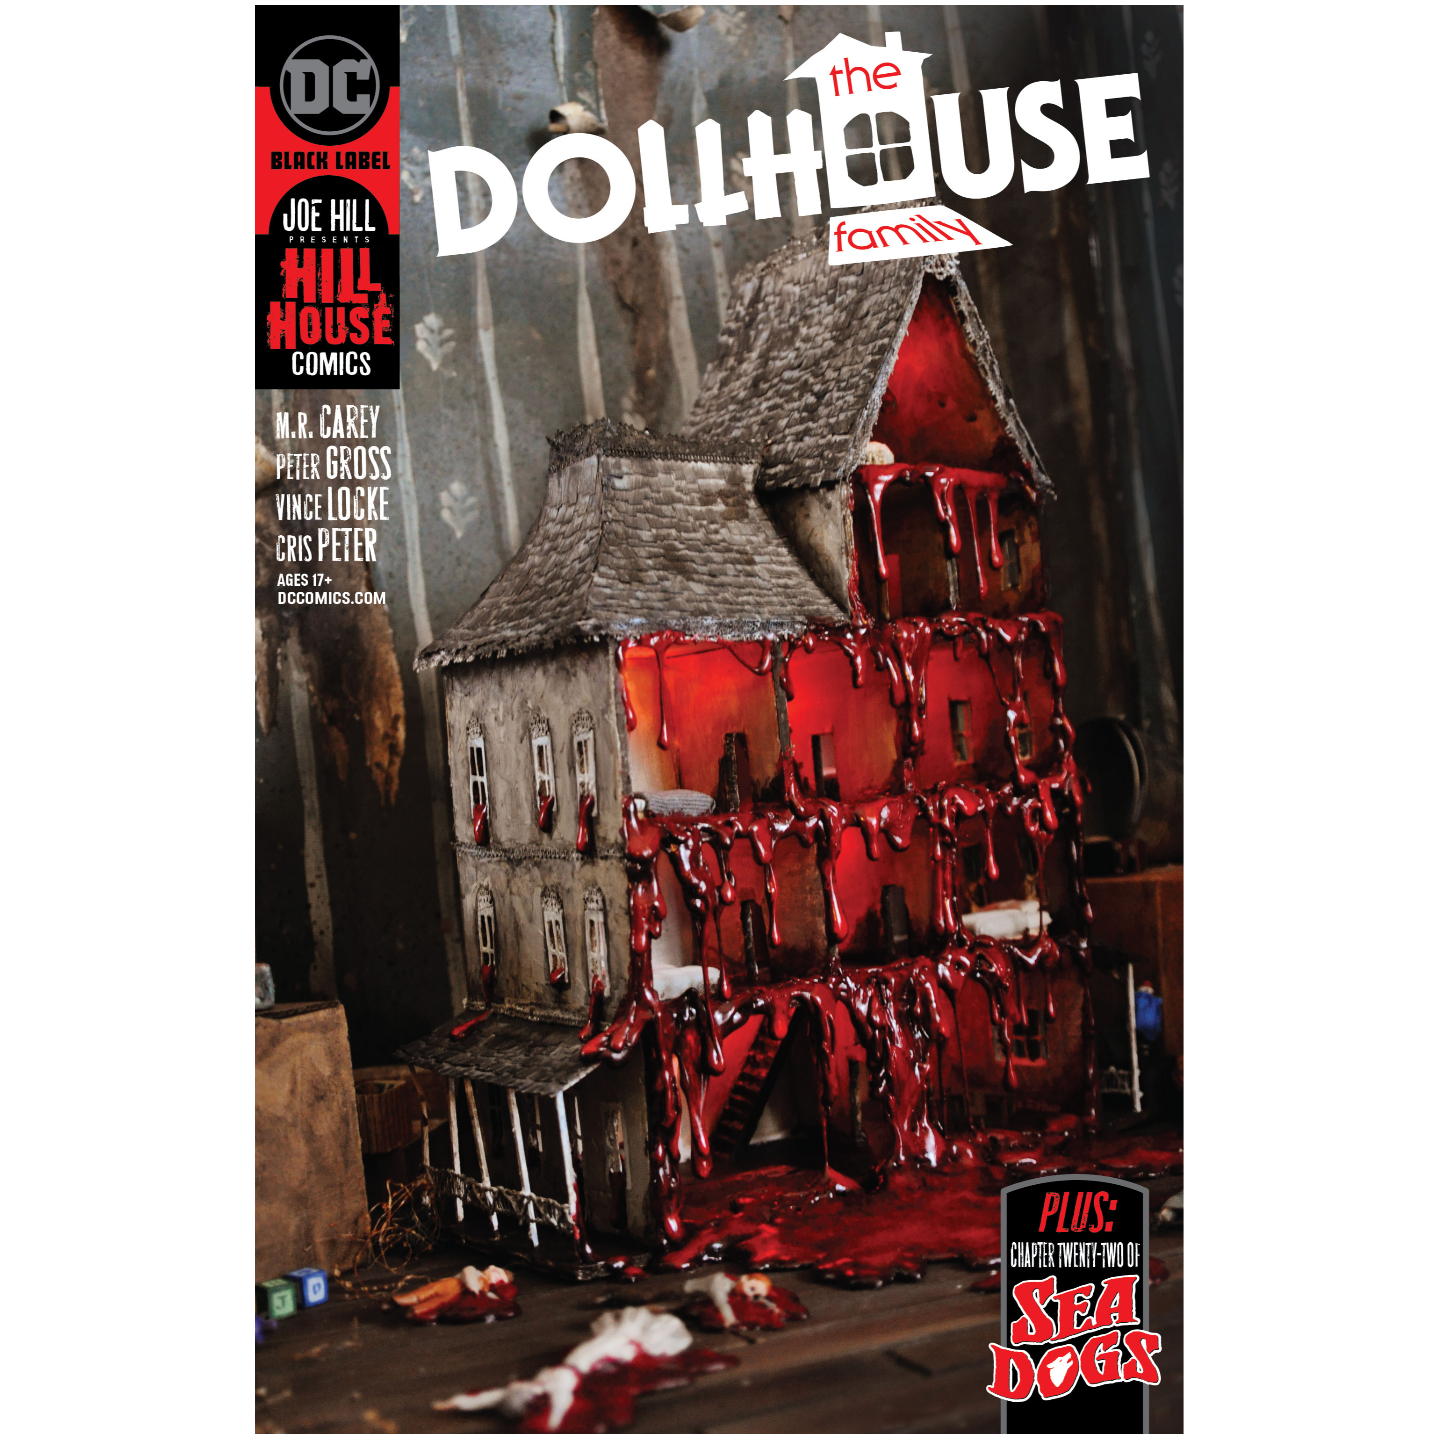 DOLLHOUSE FAMILY #6 (OF 6) (MR)